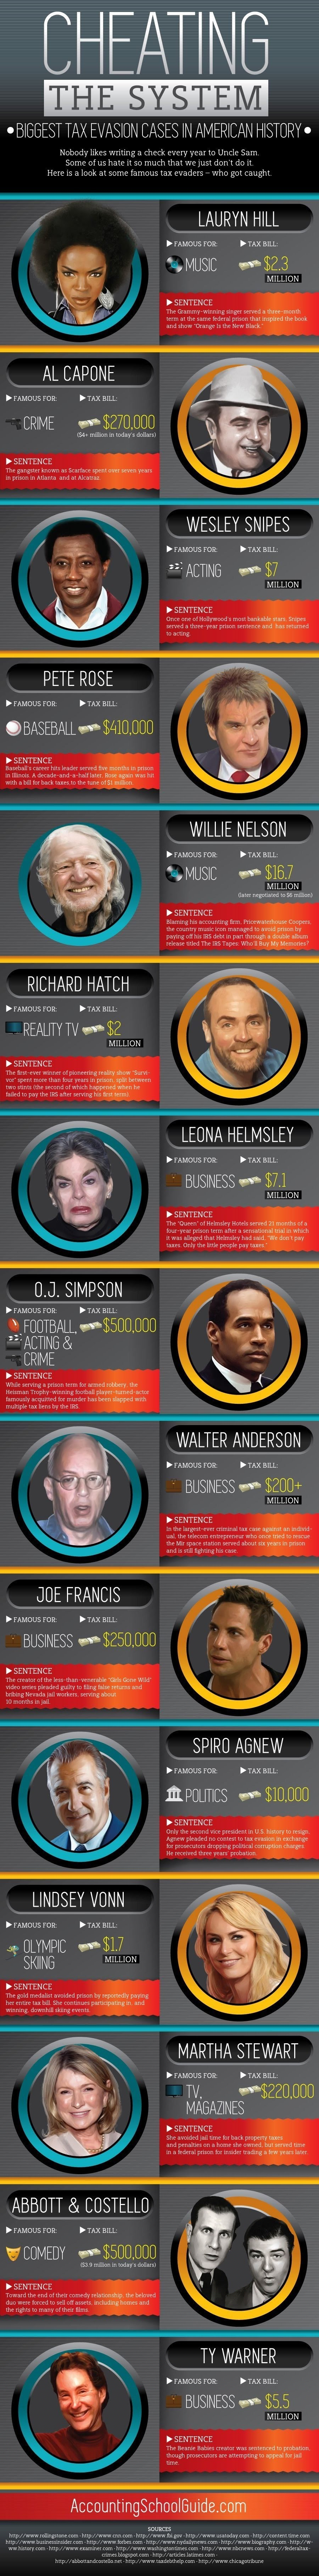 The largest instances of tax evasion in American history  #infographic